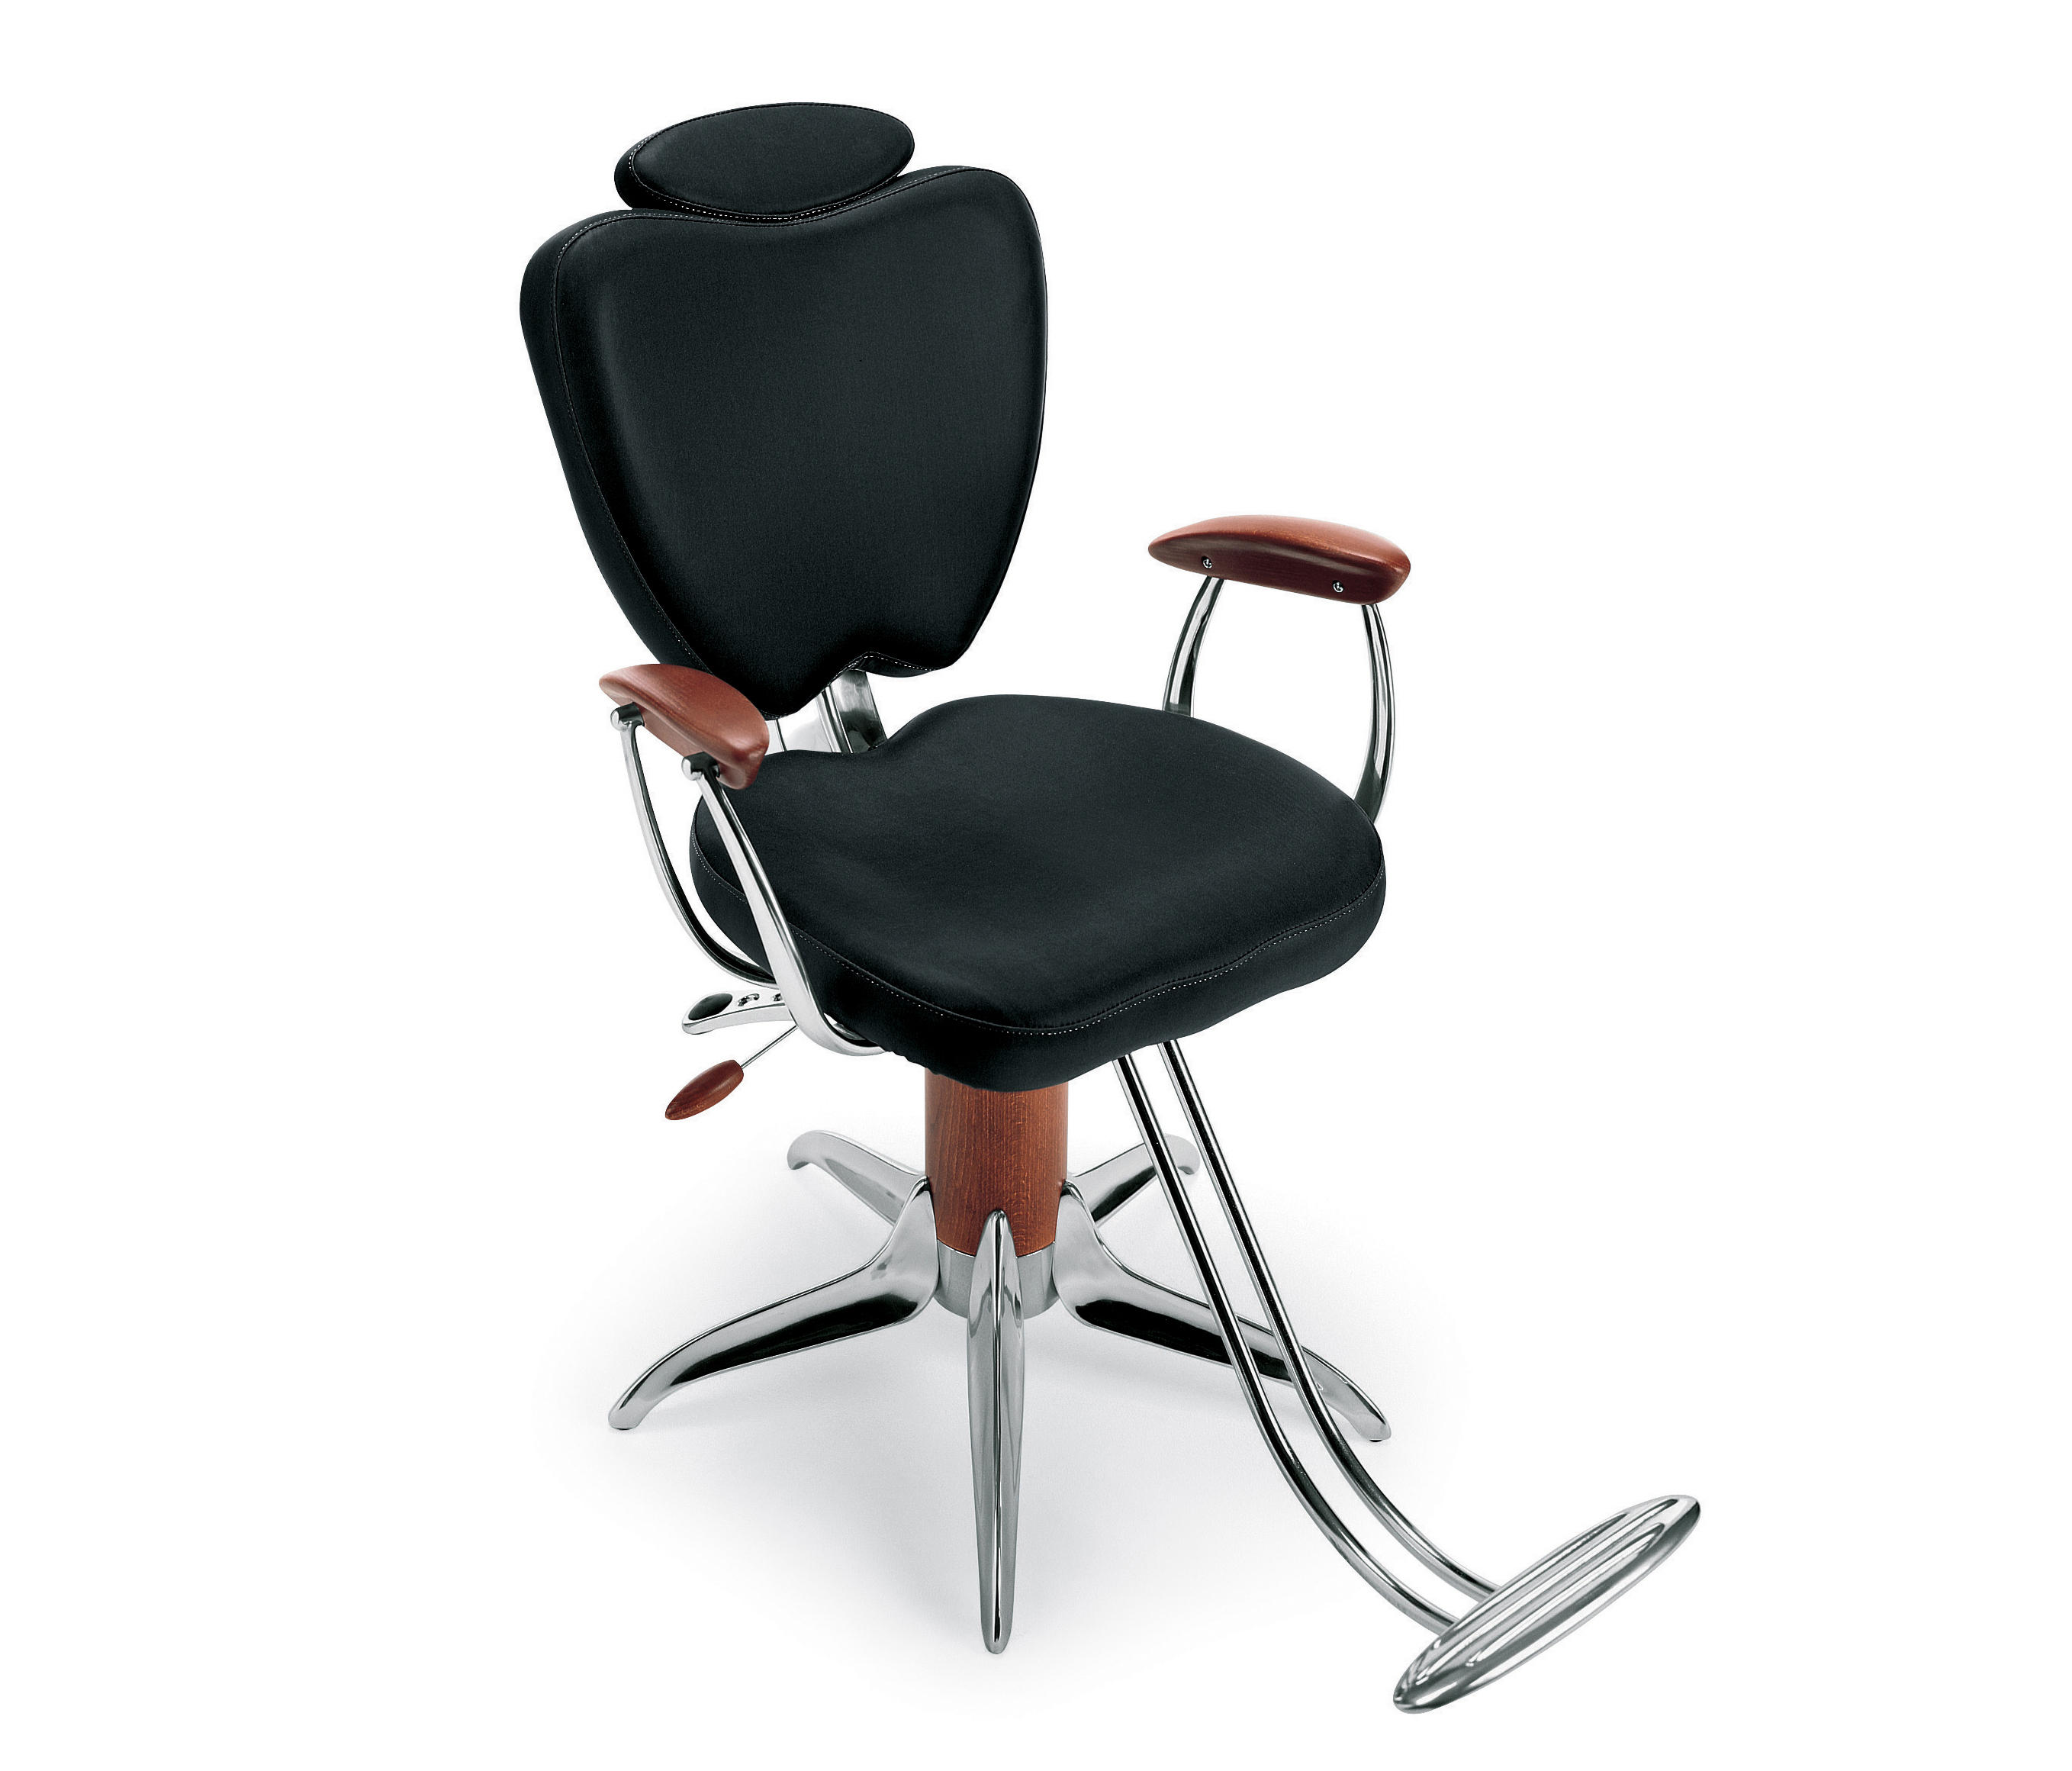 BARBER CHAIRS High quality designer BARBER CHAIRS